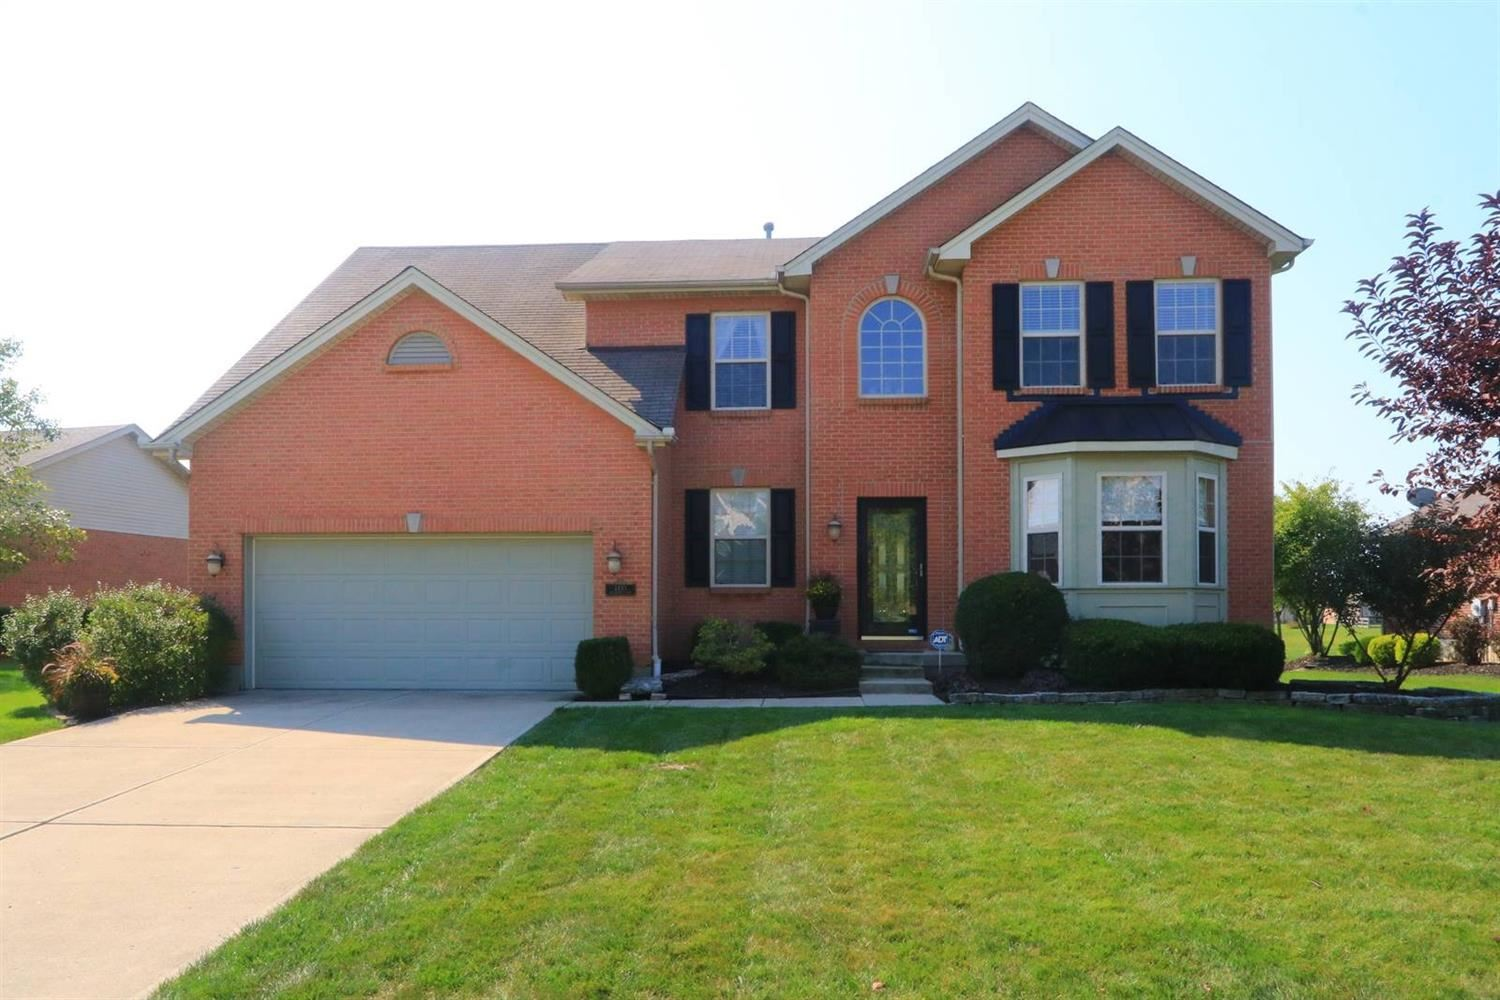 4433 Breakers Point, West Chester, OH 45069 - #: 1652731